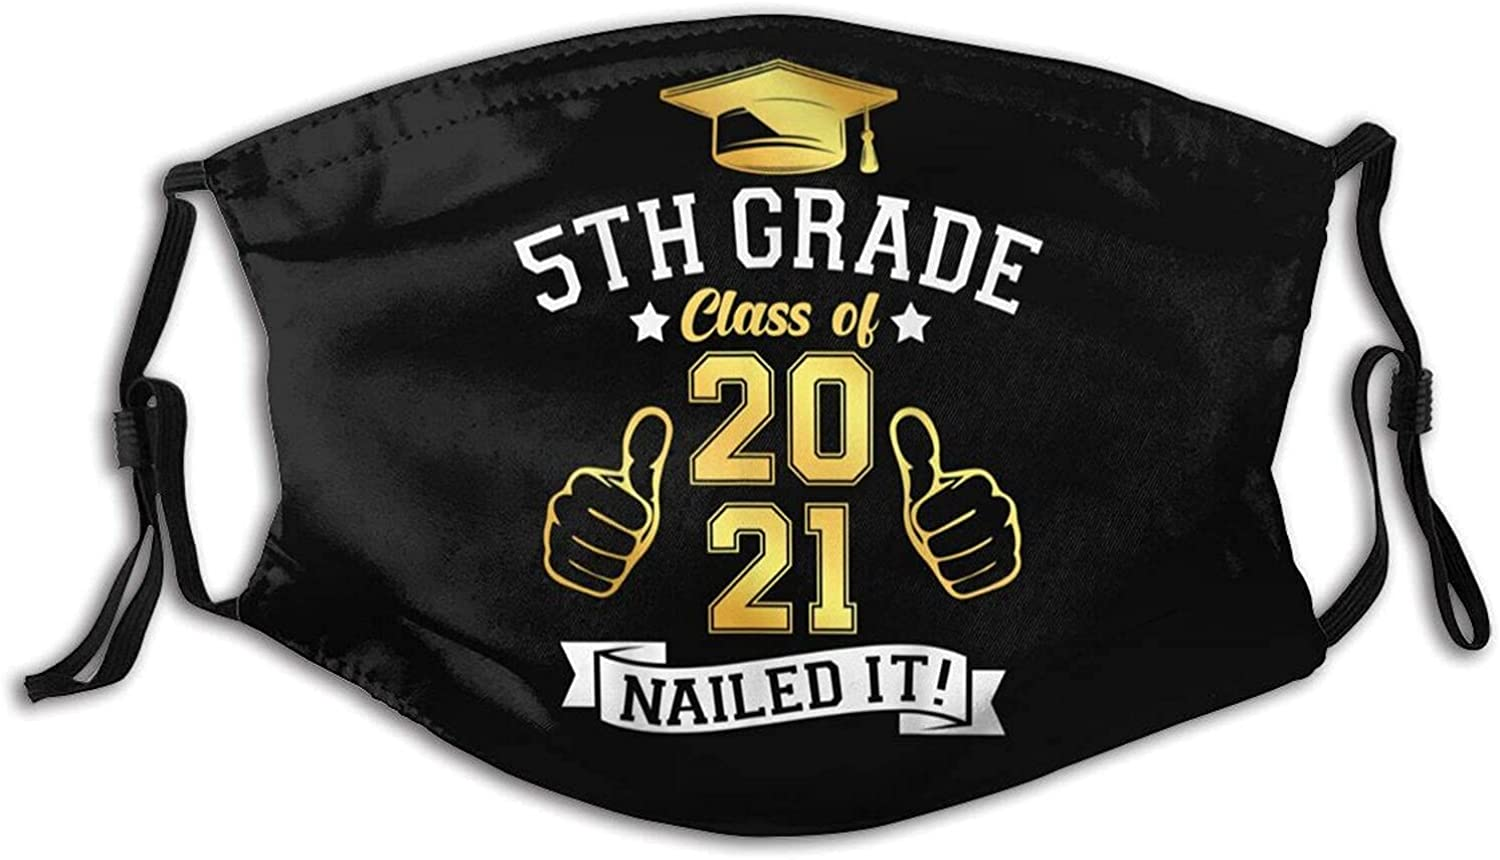 Students Graduation 5th Grade Class of 2021 Funny Face Mask Reusable Adjustable with Filter Pocket Bandanas for Women and Men Balaclava